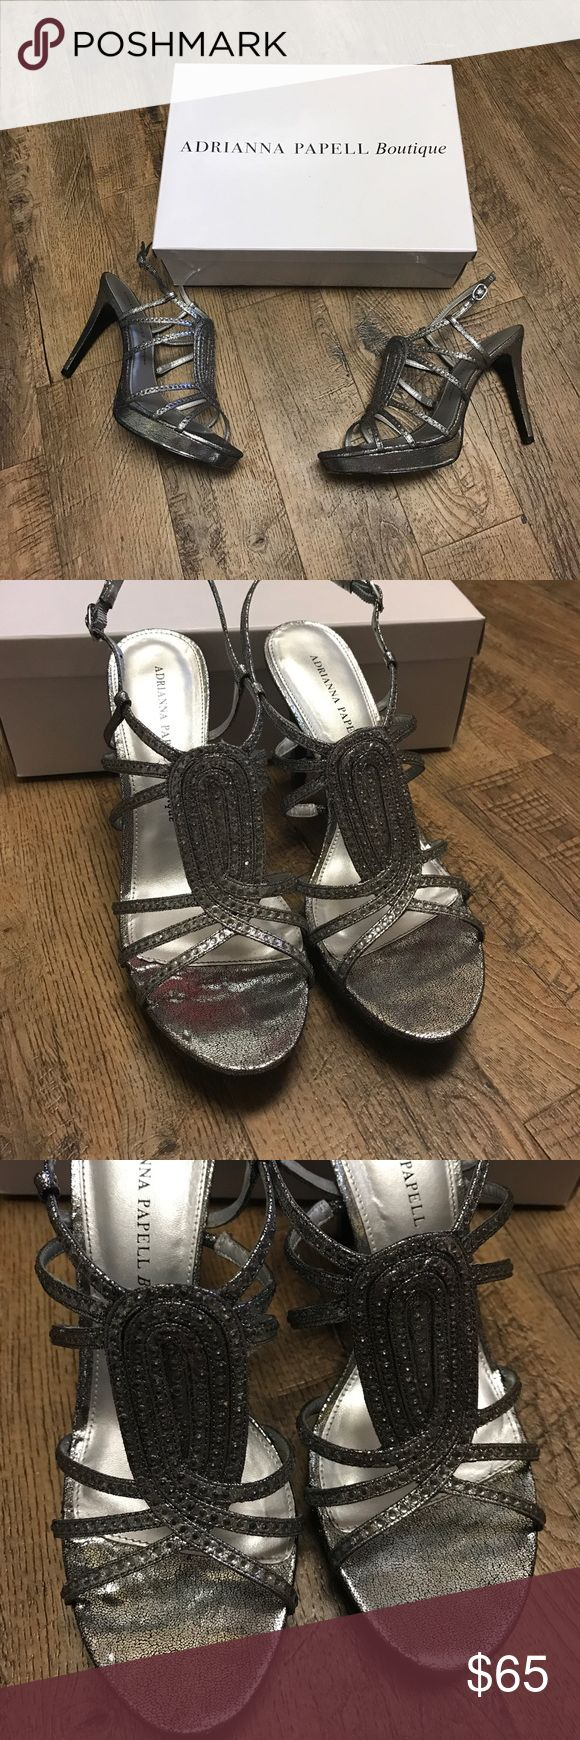 Adrianna Papell Boutique Brandy Pewter Sandals 8 Absolutely stunning ✨ Adrianna Papell Boutique Brandy Pewter Stone Metallic High Heel Sandals - Size 8 - excellent, used condition - only worn once for a wedding - very comfortable - heel is approx. 4 inches - no stones are missing - comes with box and additional stones - super sexy sandals Adrianna Papell Shoes Heels